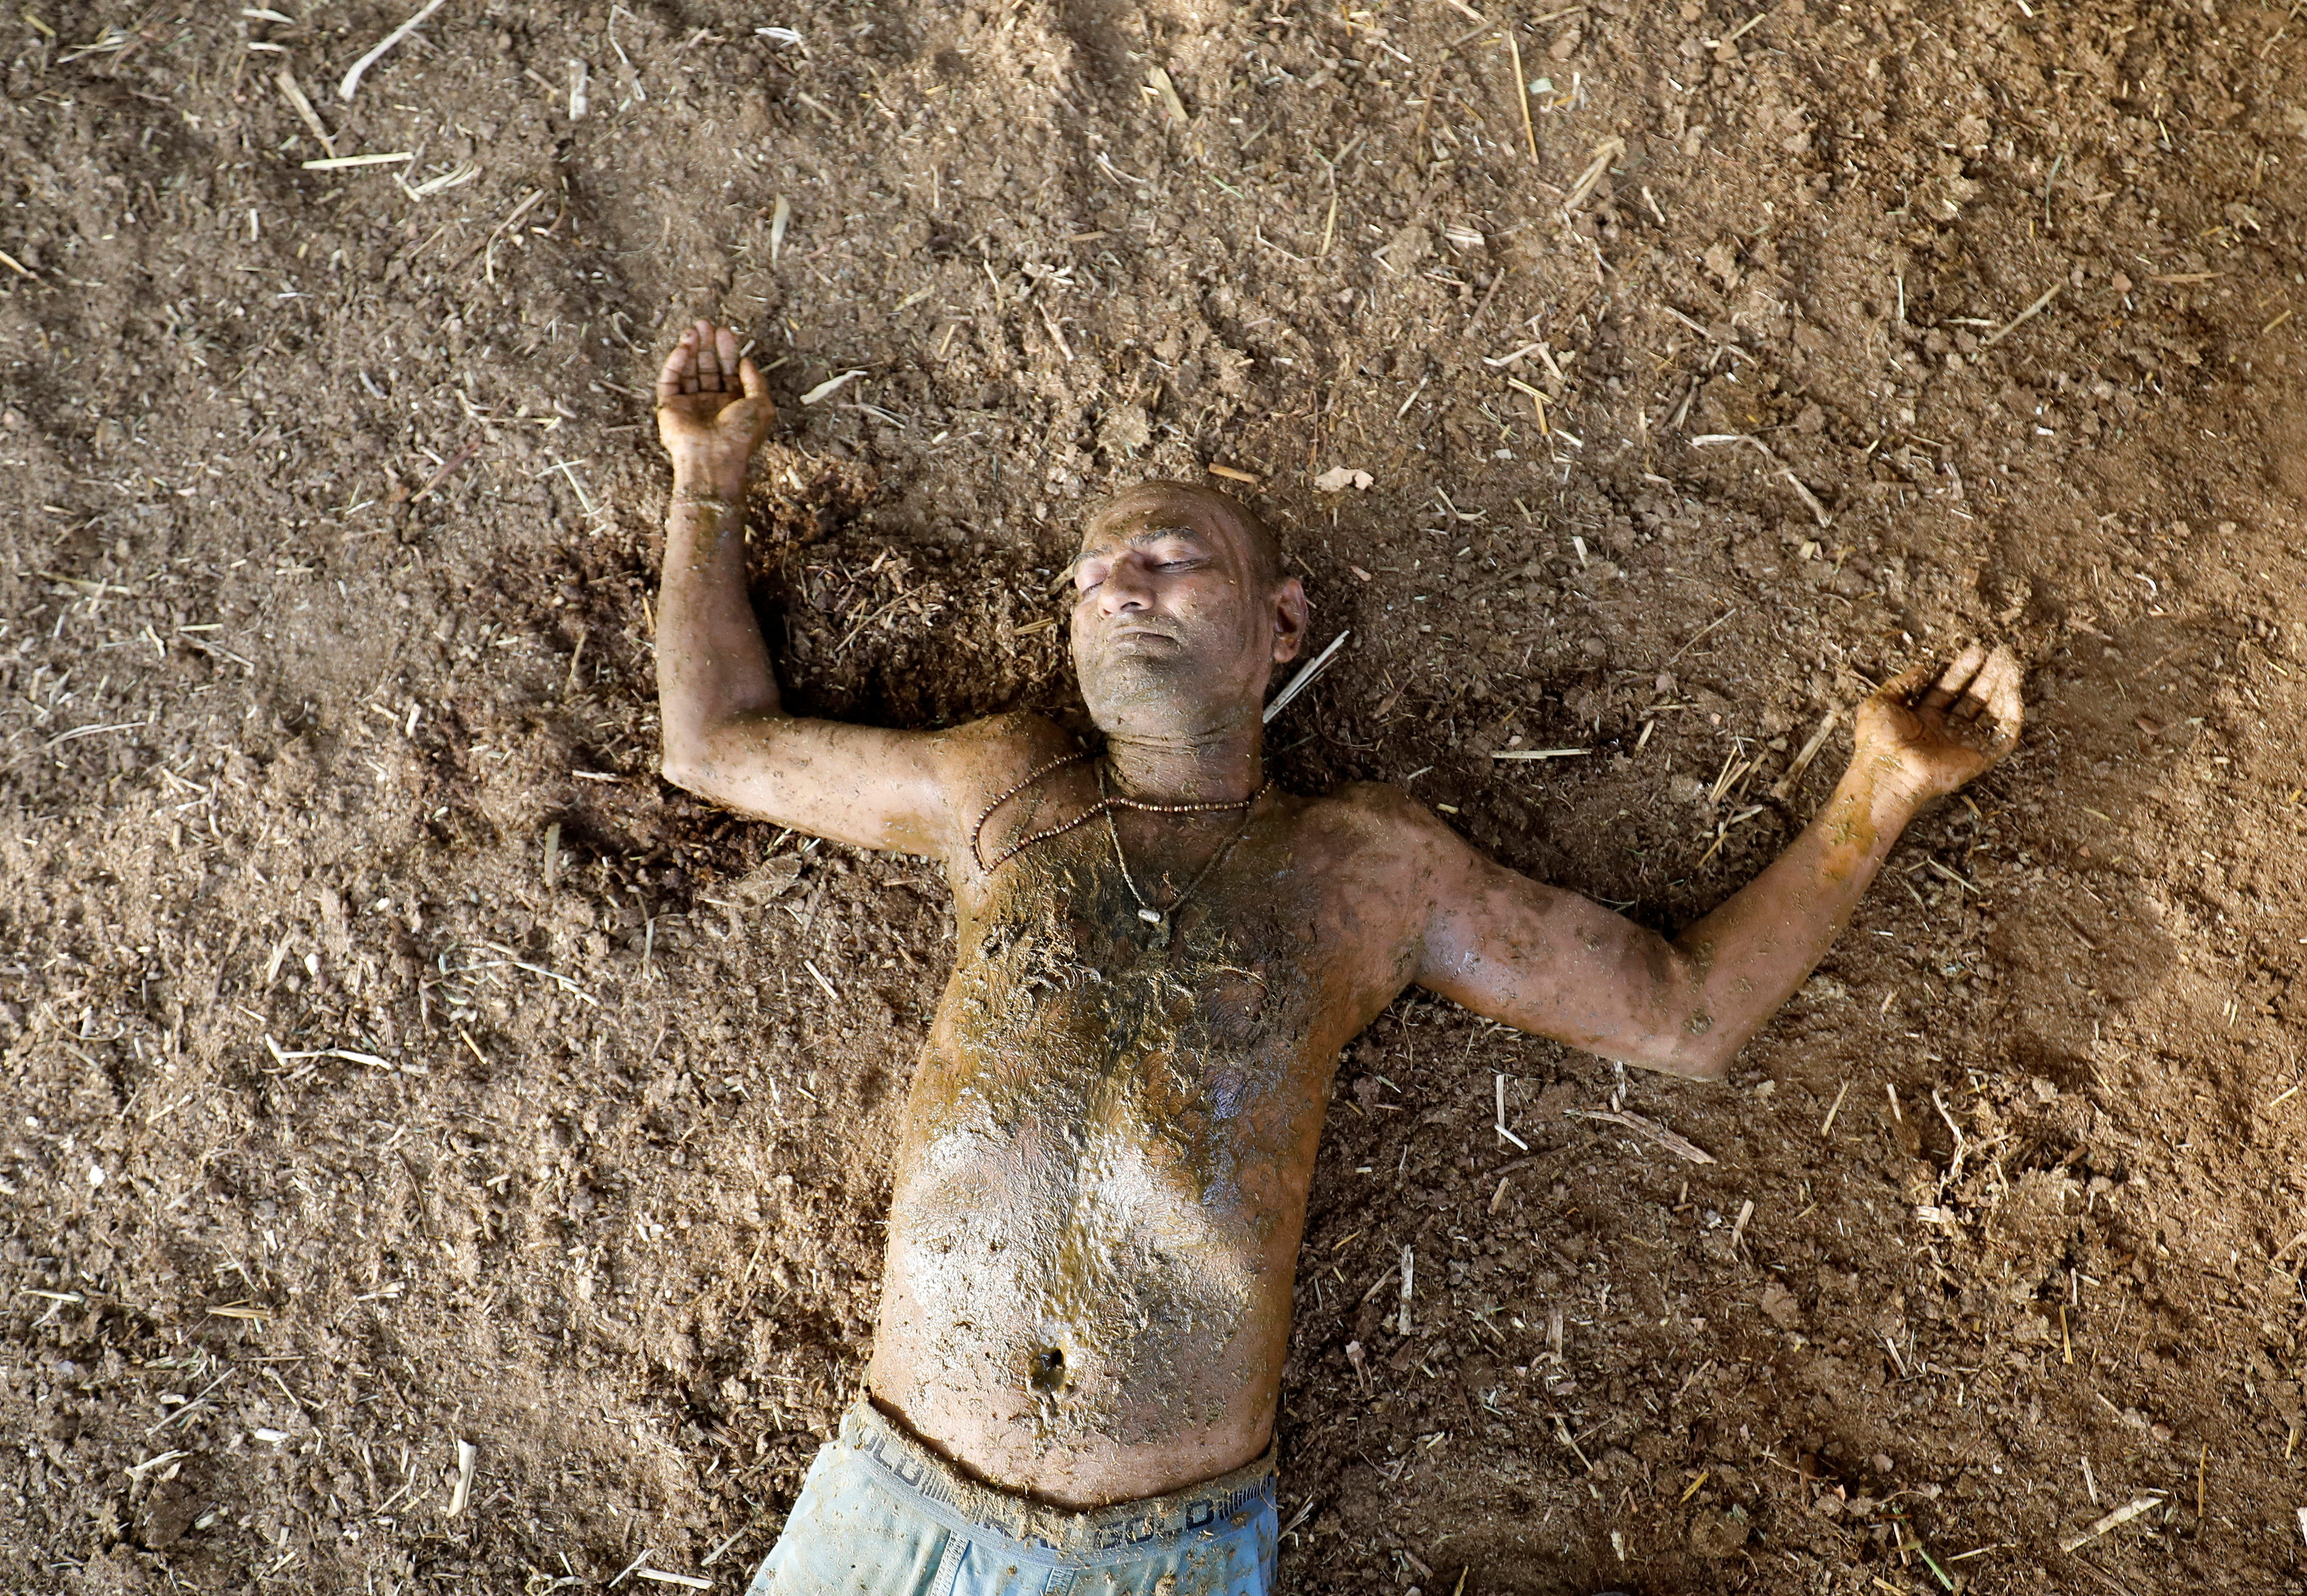 """Ashok Oza lies on the ground after applying cow dung on his body during """"cow dung therapy"""", believing it will boost his immunity to defend against the coronavirus disease (Covid-19) at the Shree Swaminarayan Gurukul Vishwavidya Pratishthanam Gaushala or cow shelter on the outskirts of Ahmedabad, India, May 9, 2021."""